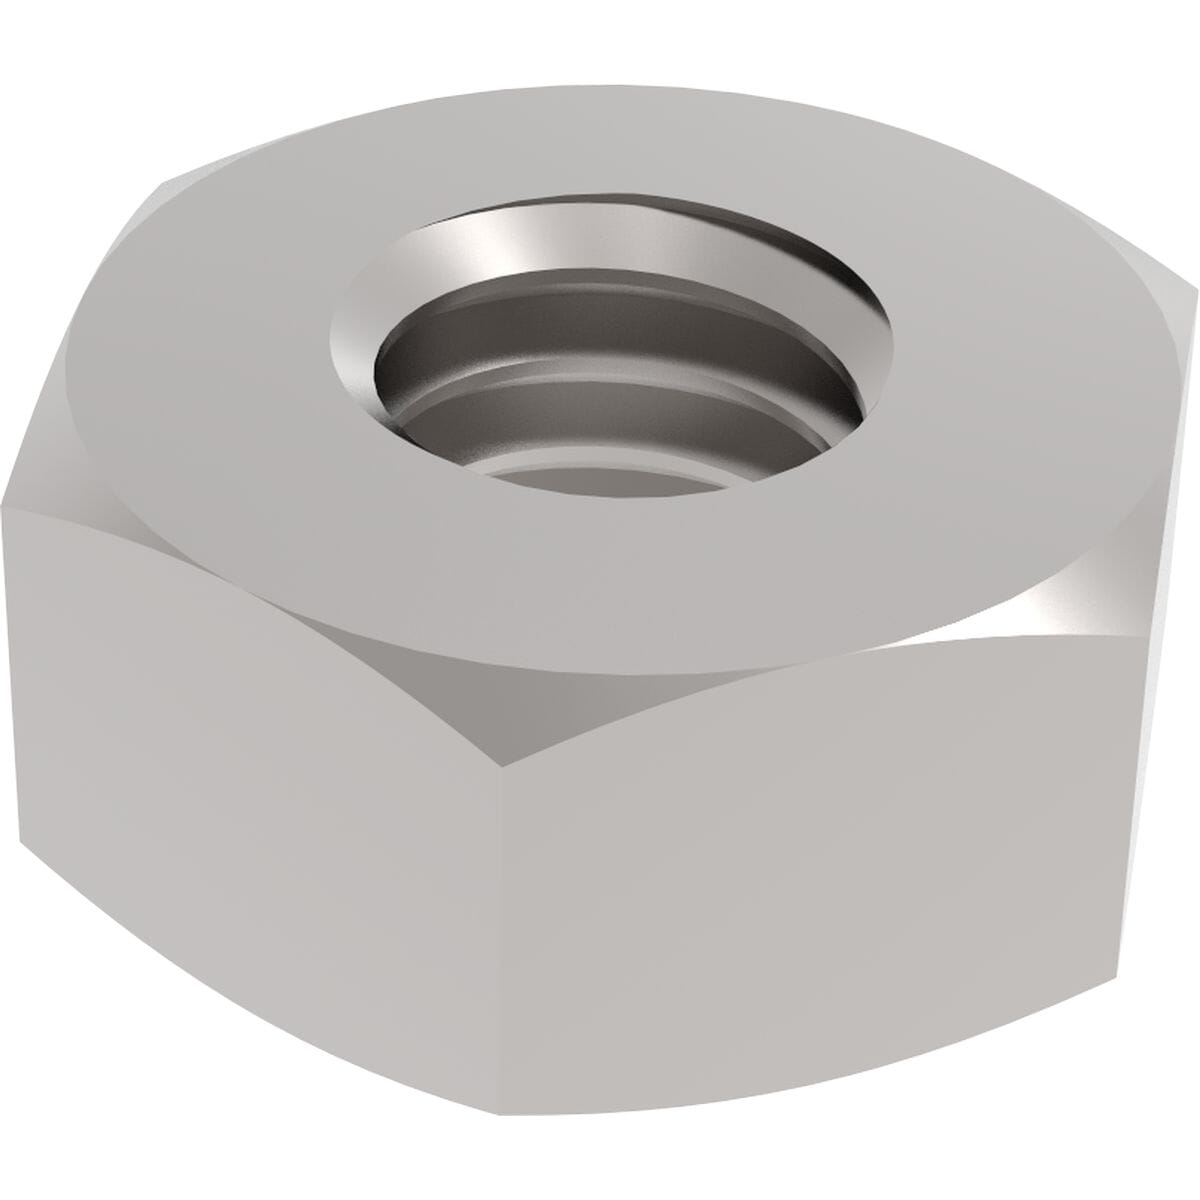 M12 Hexagon Nuts (DIN 934) - Stainless Steel (A2)